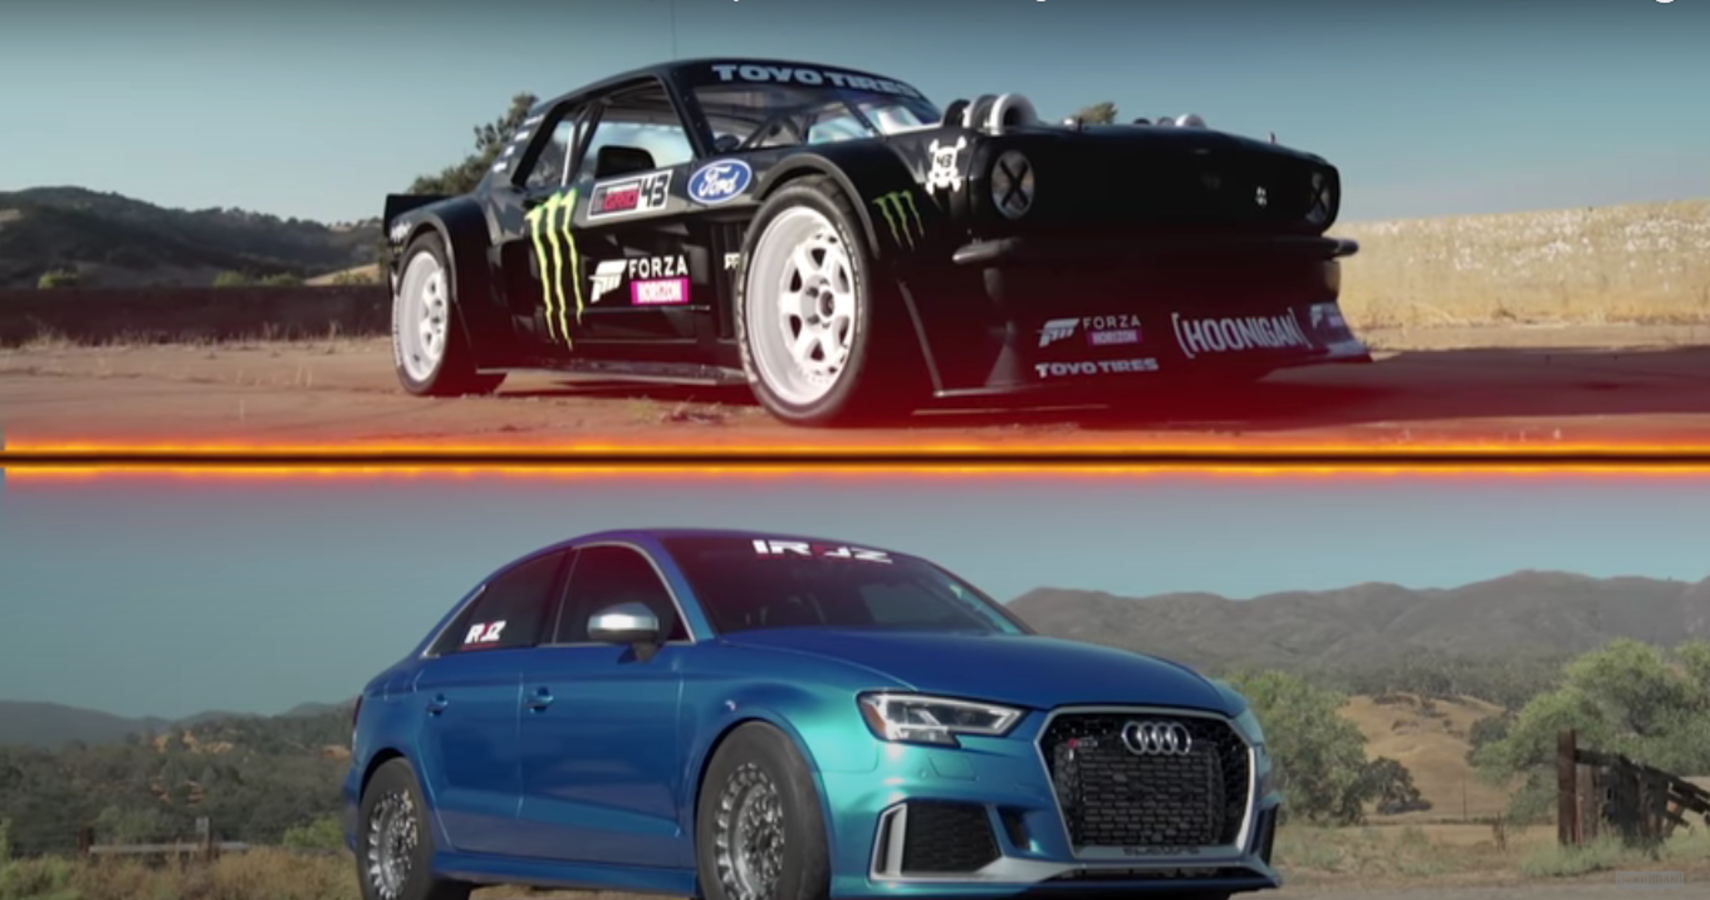 World's Fastest Audi RS3 Drag Races Ken Block's 1400-HP Mustang Hoonicorn